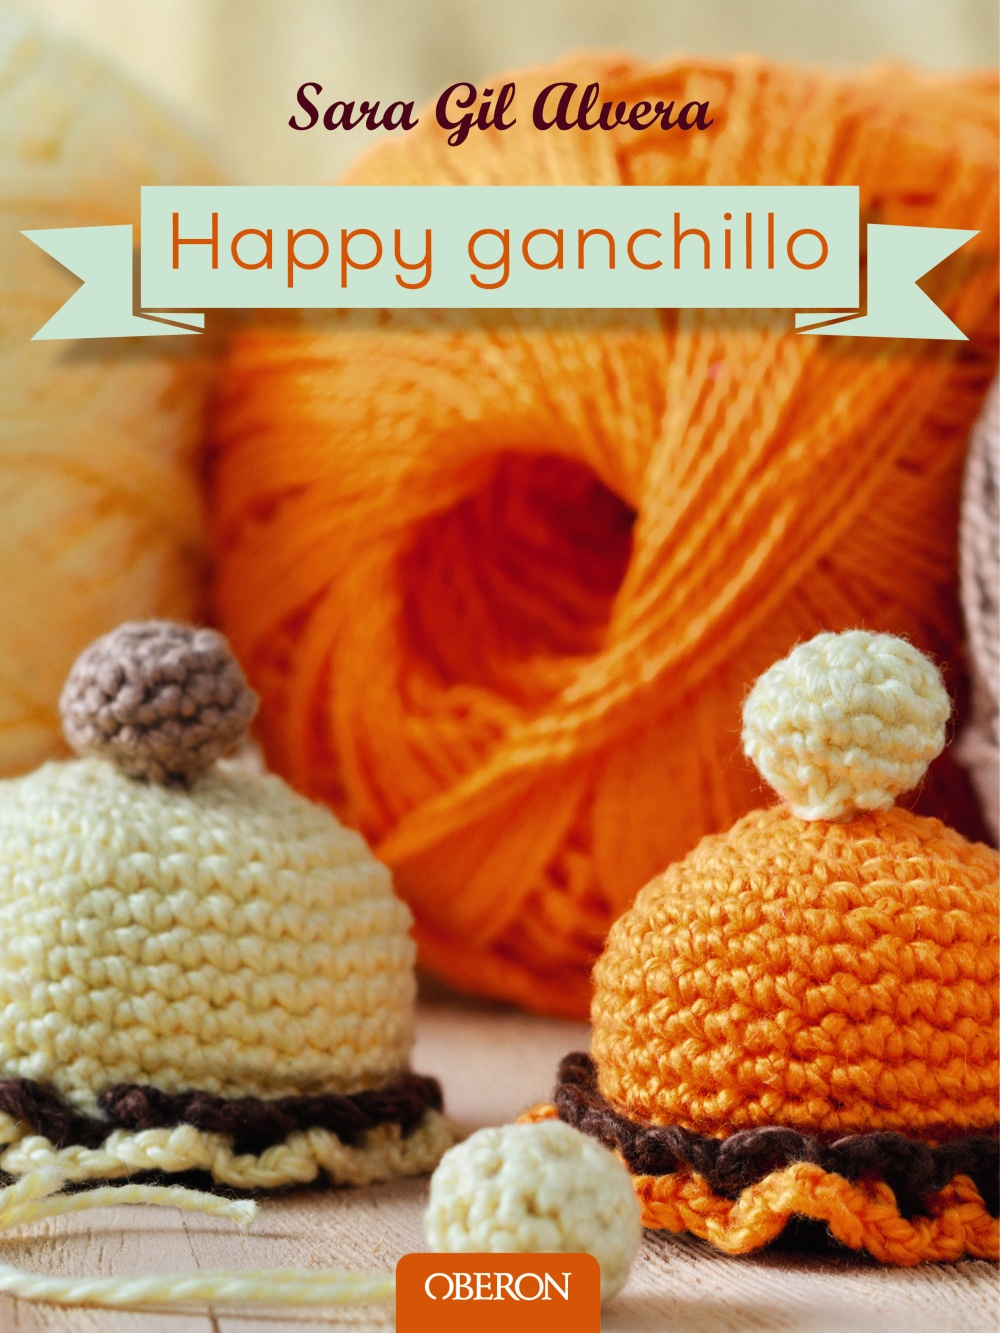 happy-ganchillo-978-84-415-3716-3.jpg